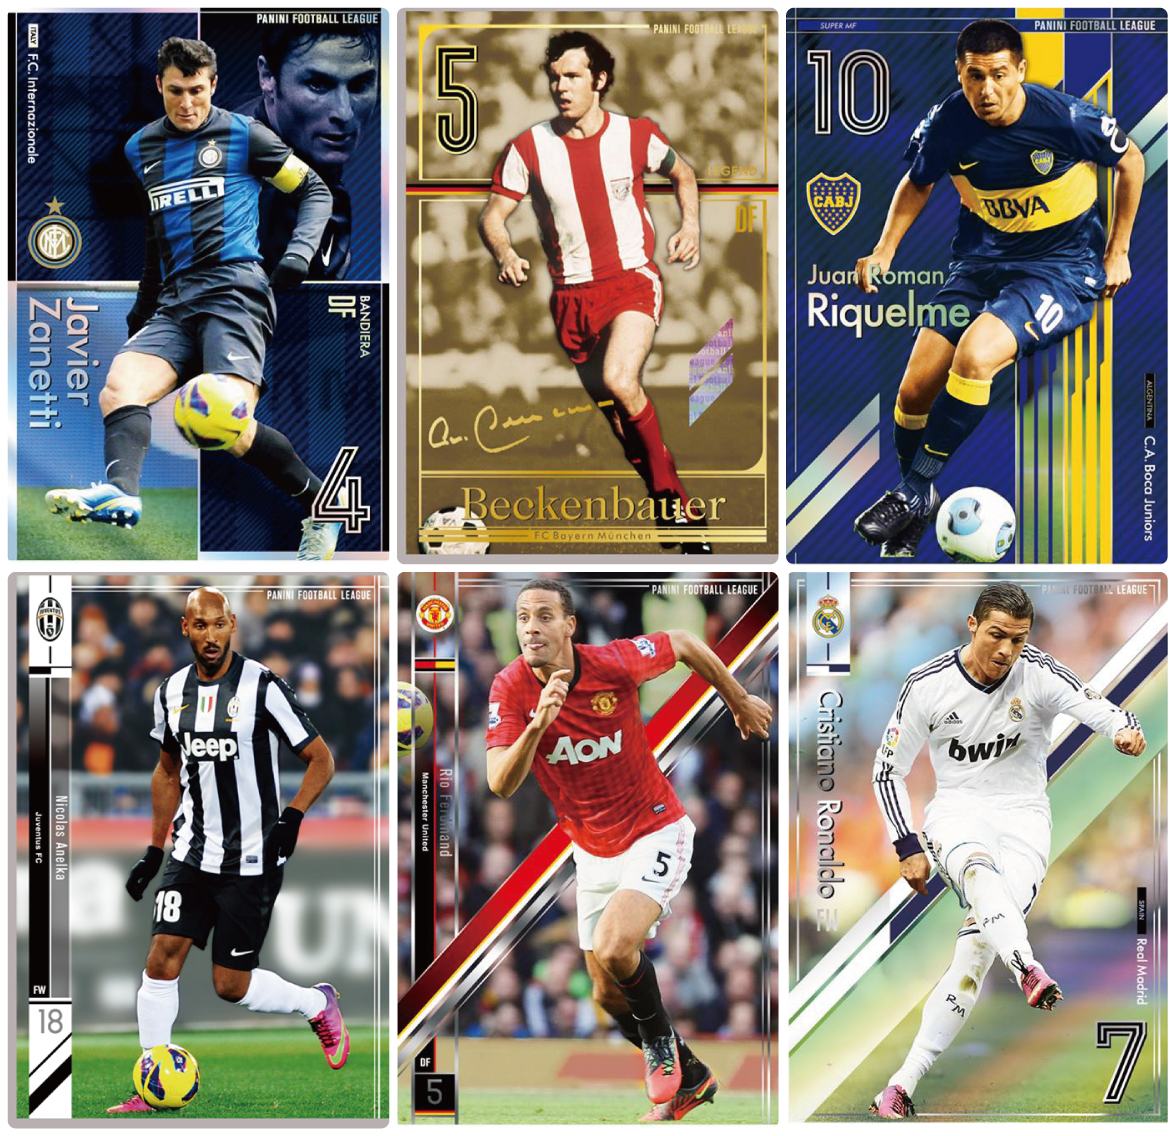 Panini Football League 04